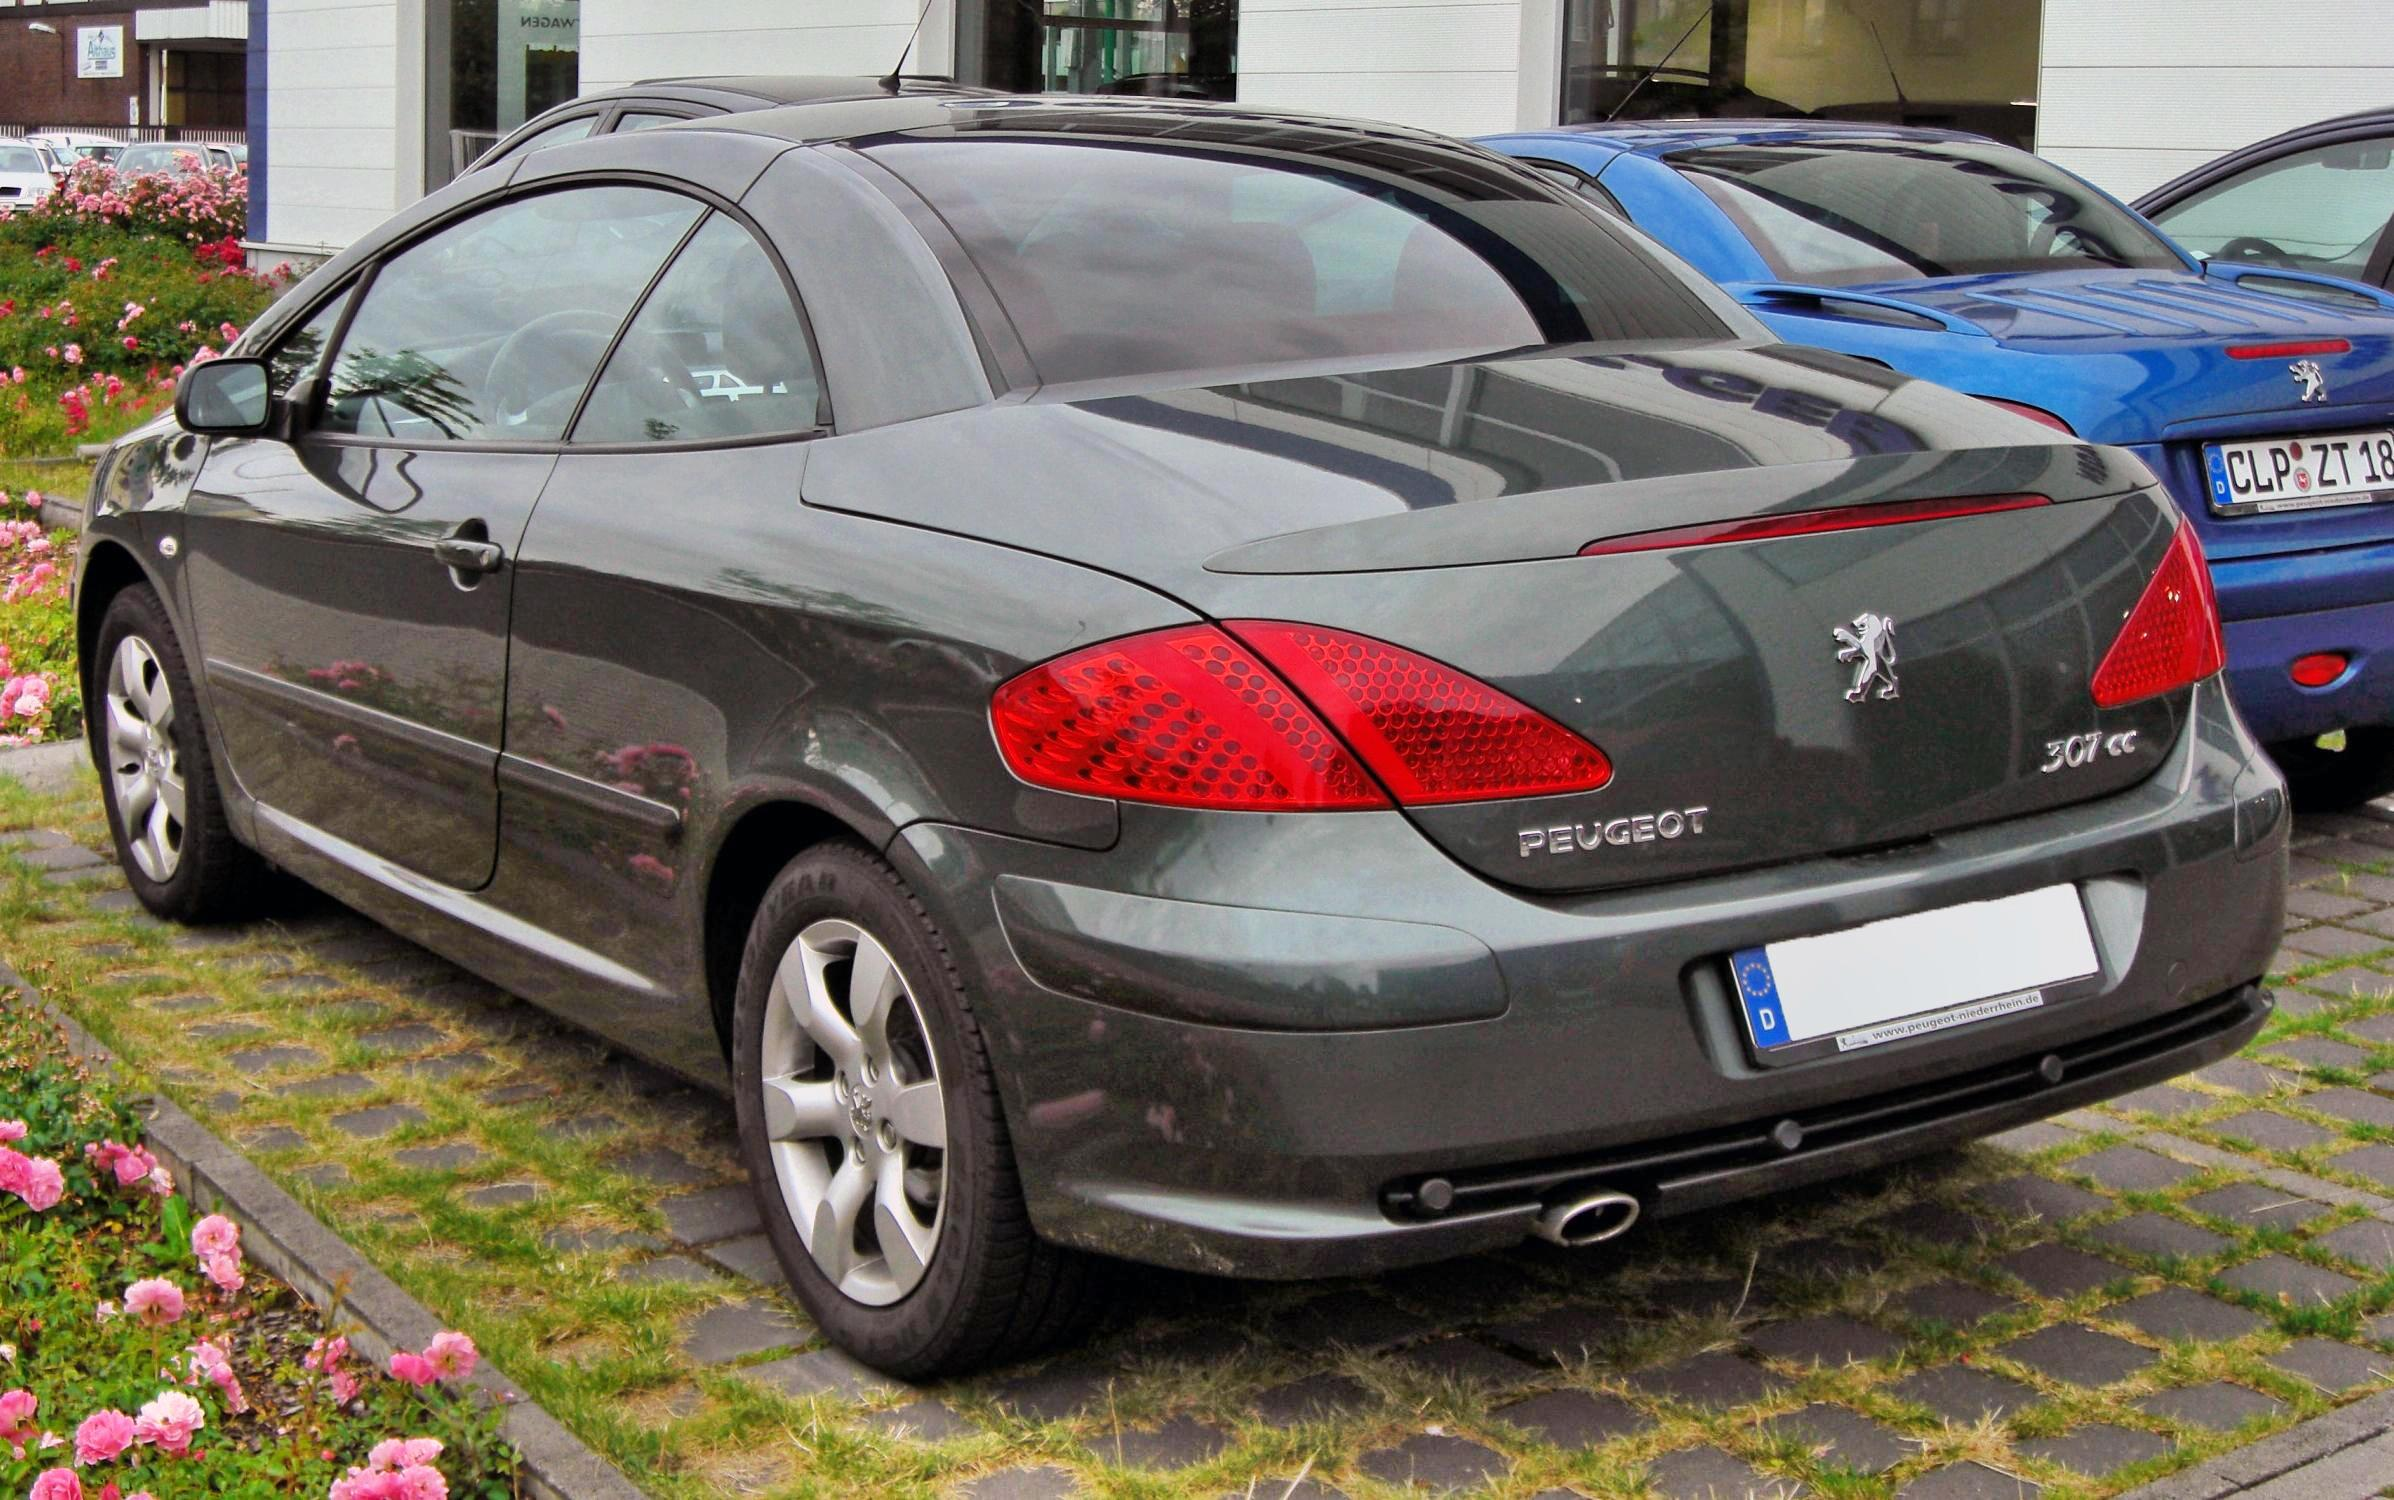 file peugeot 307 cc facelift 20090620 rear jpg wikimedia. Black Bedroom Furniture Sets. Home Design Ideas